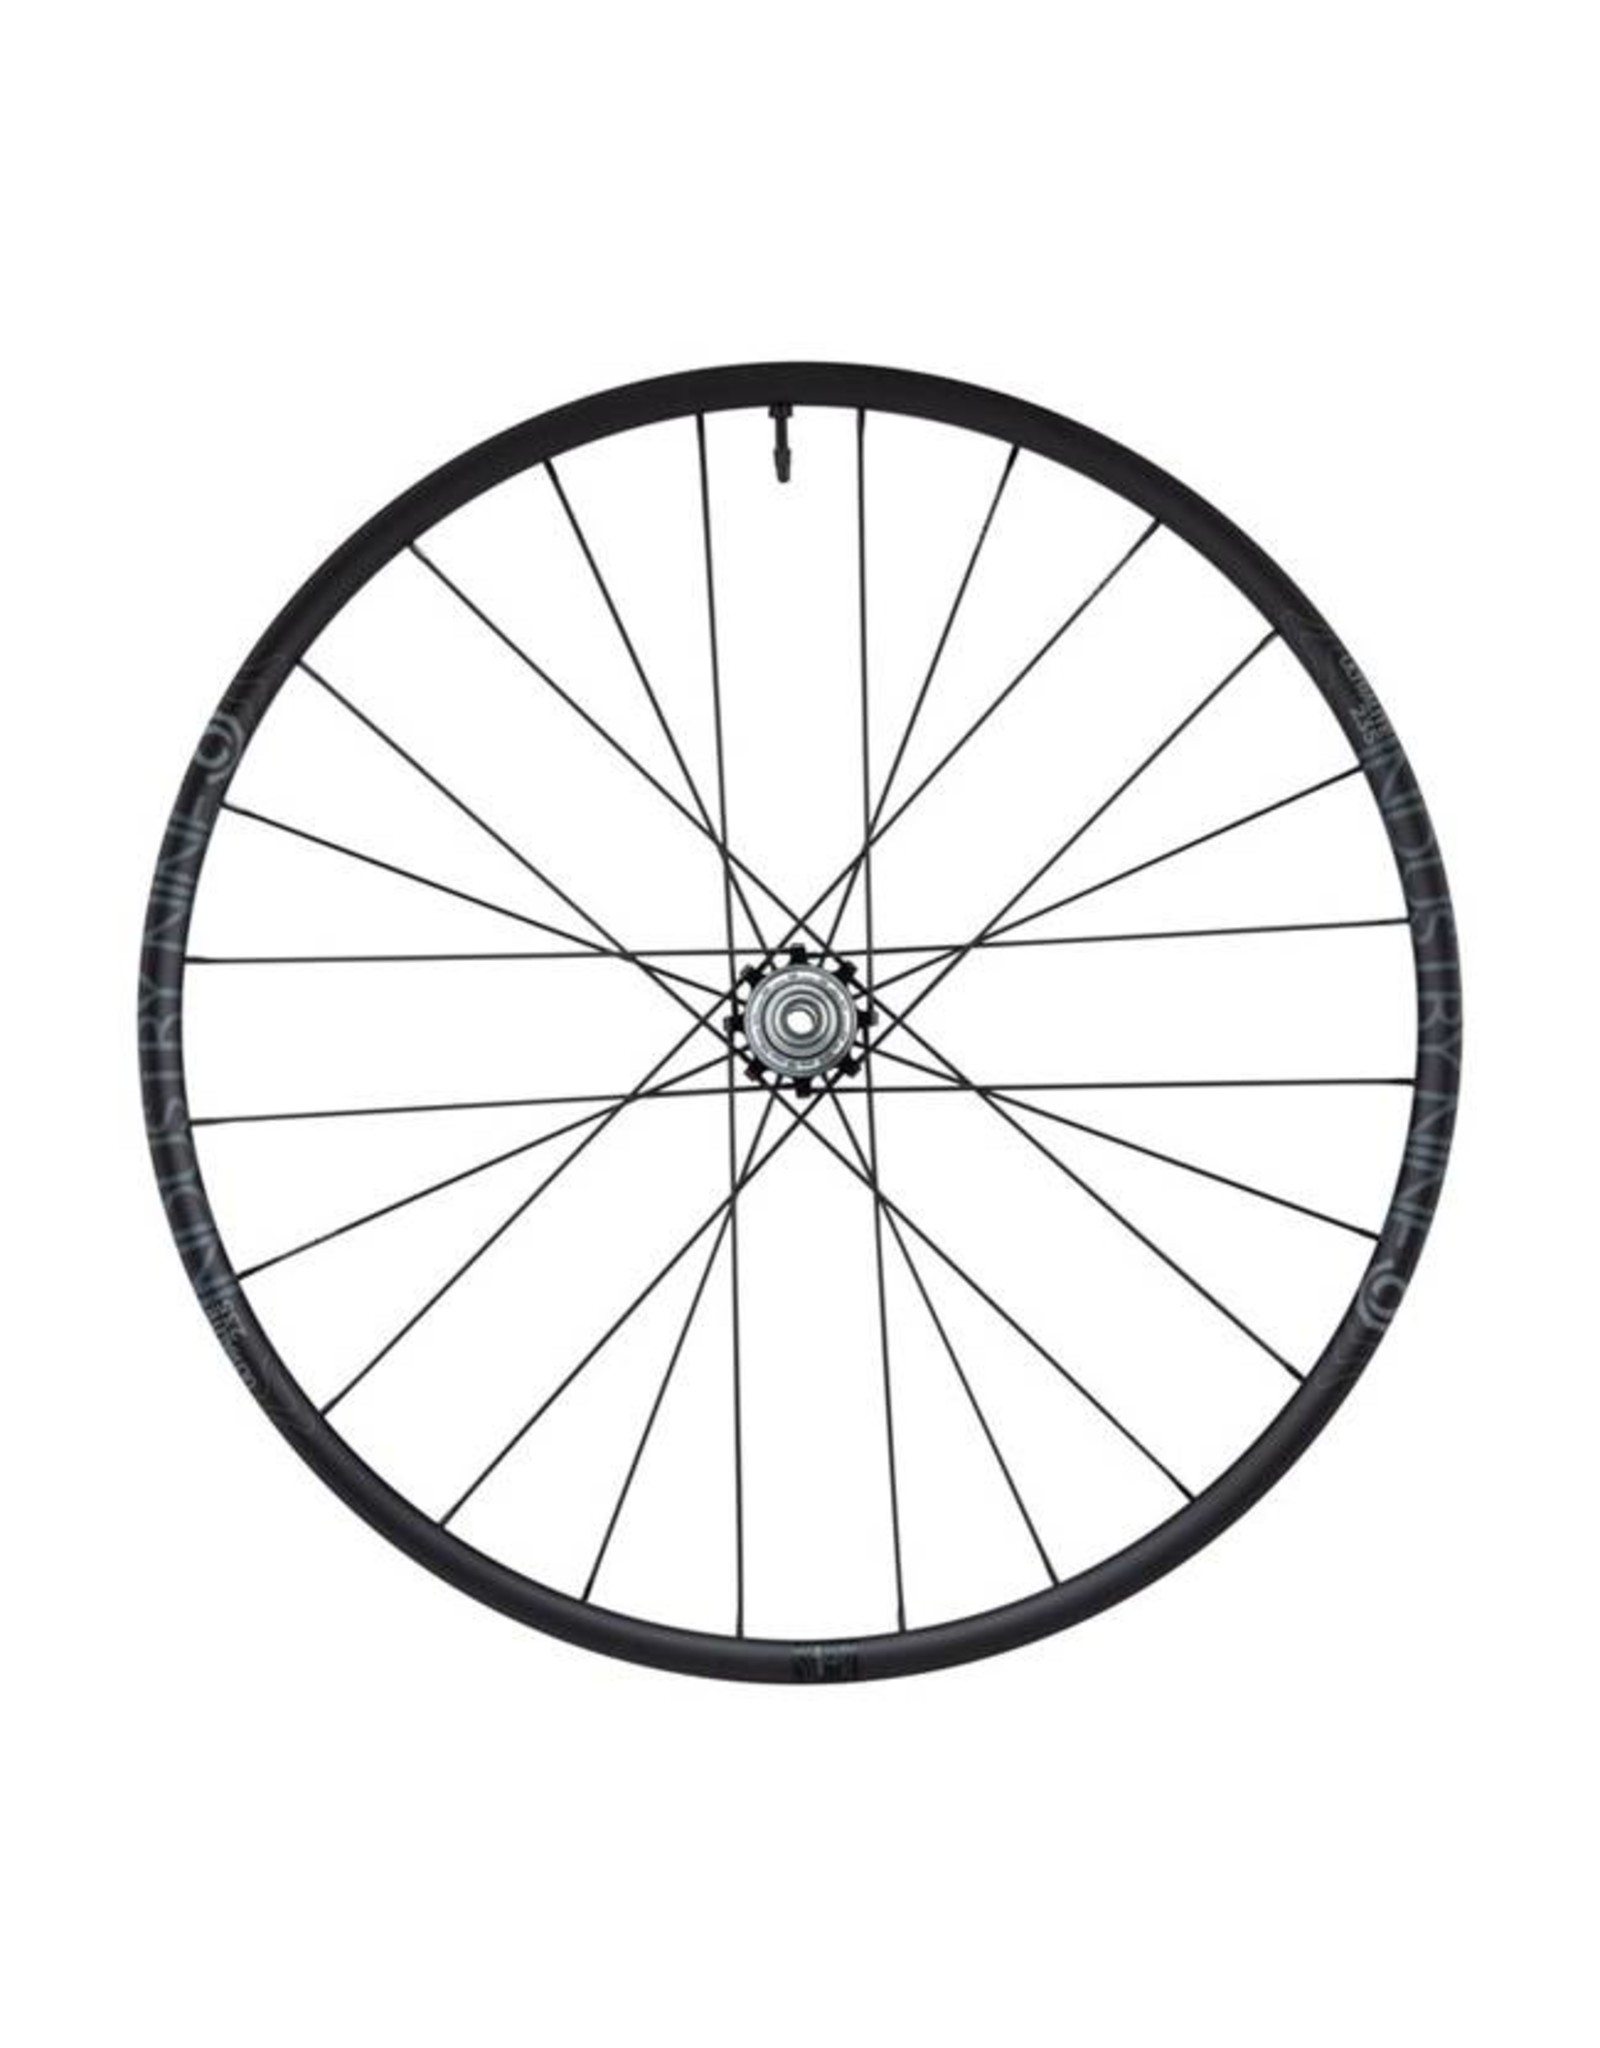 Industry Nine Industry Nine ULCX235 TRA 700c Wheelset with 12/12x142mm Axles, XD-R Freehub Body, All Black